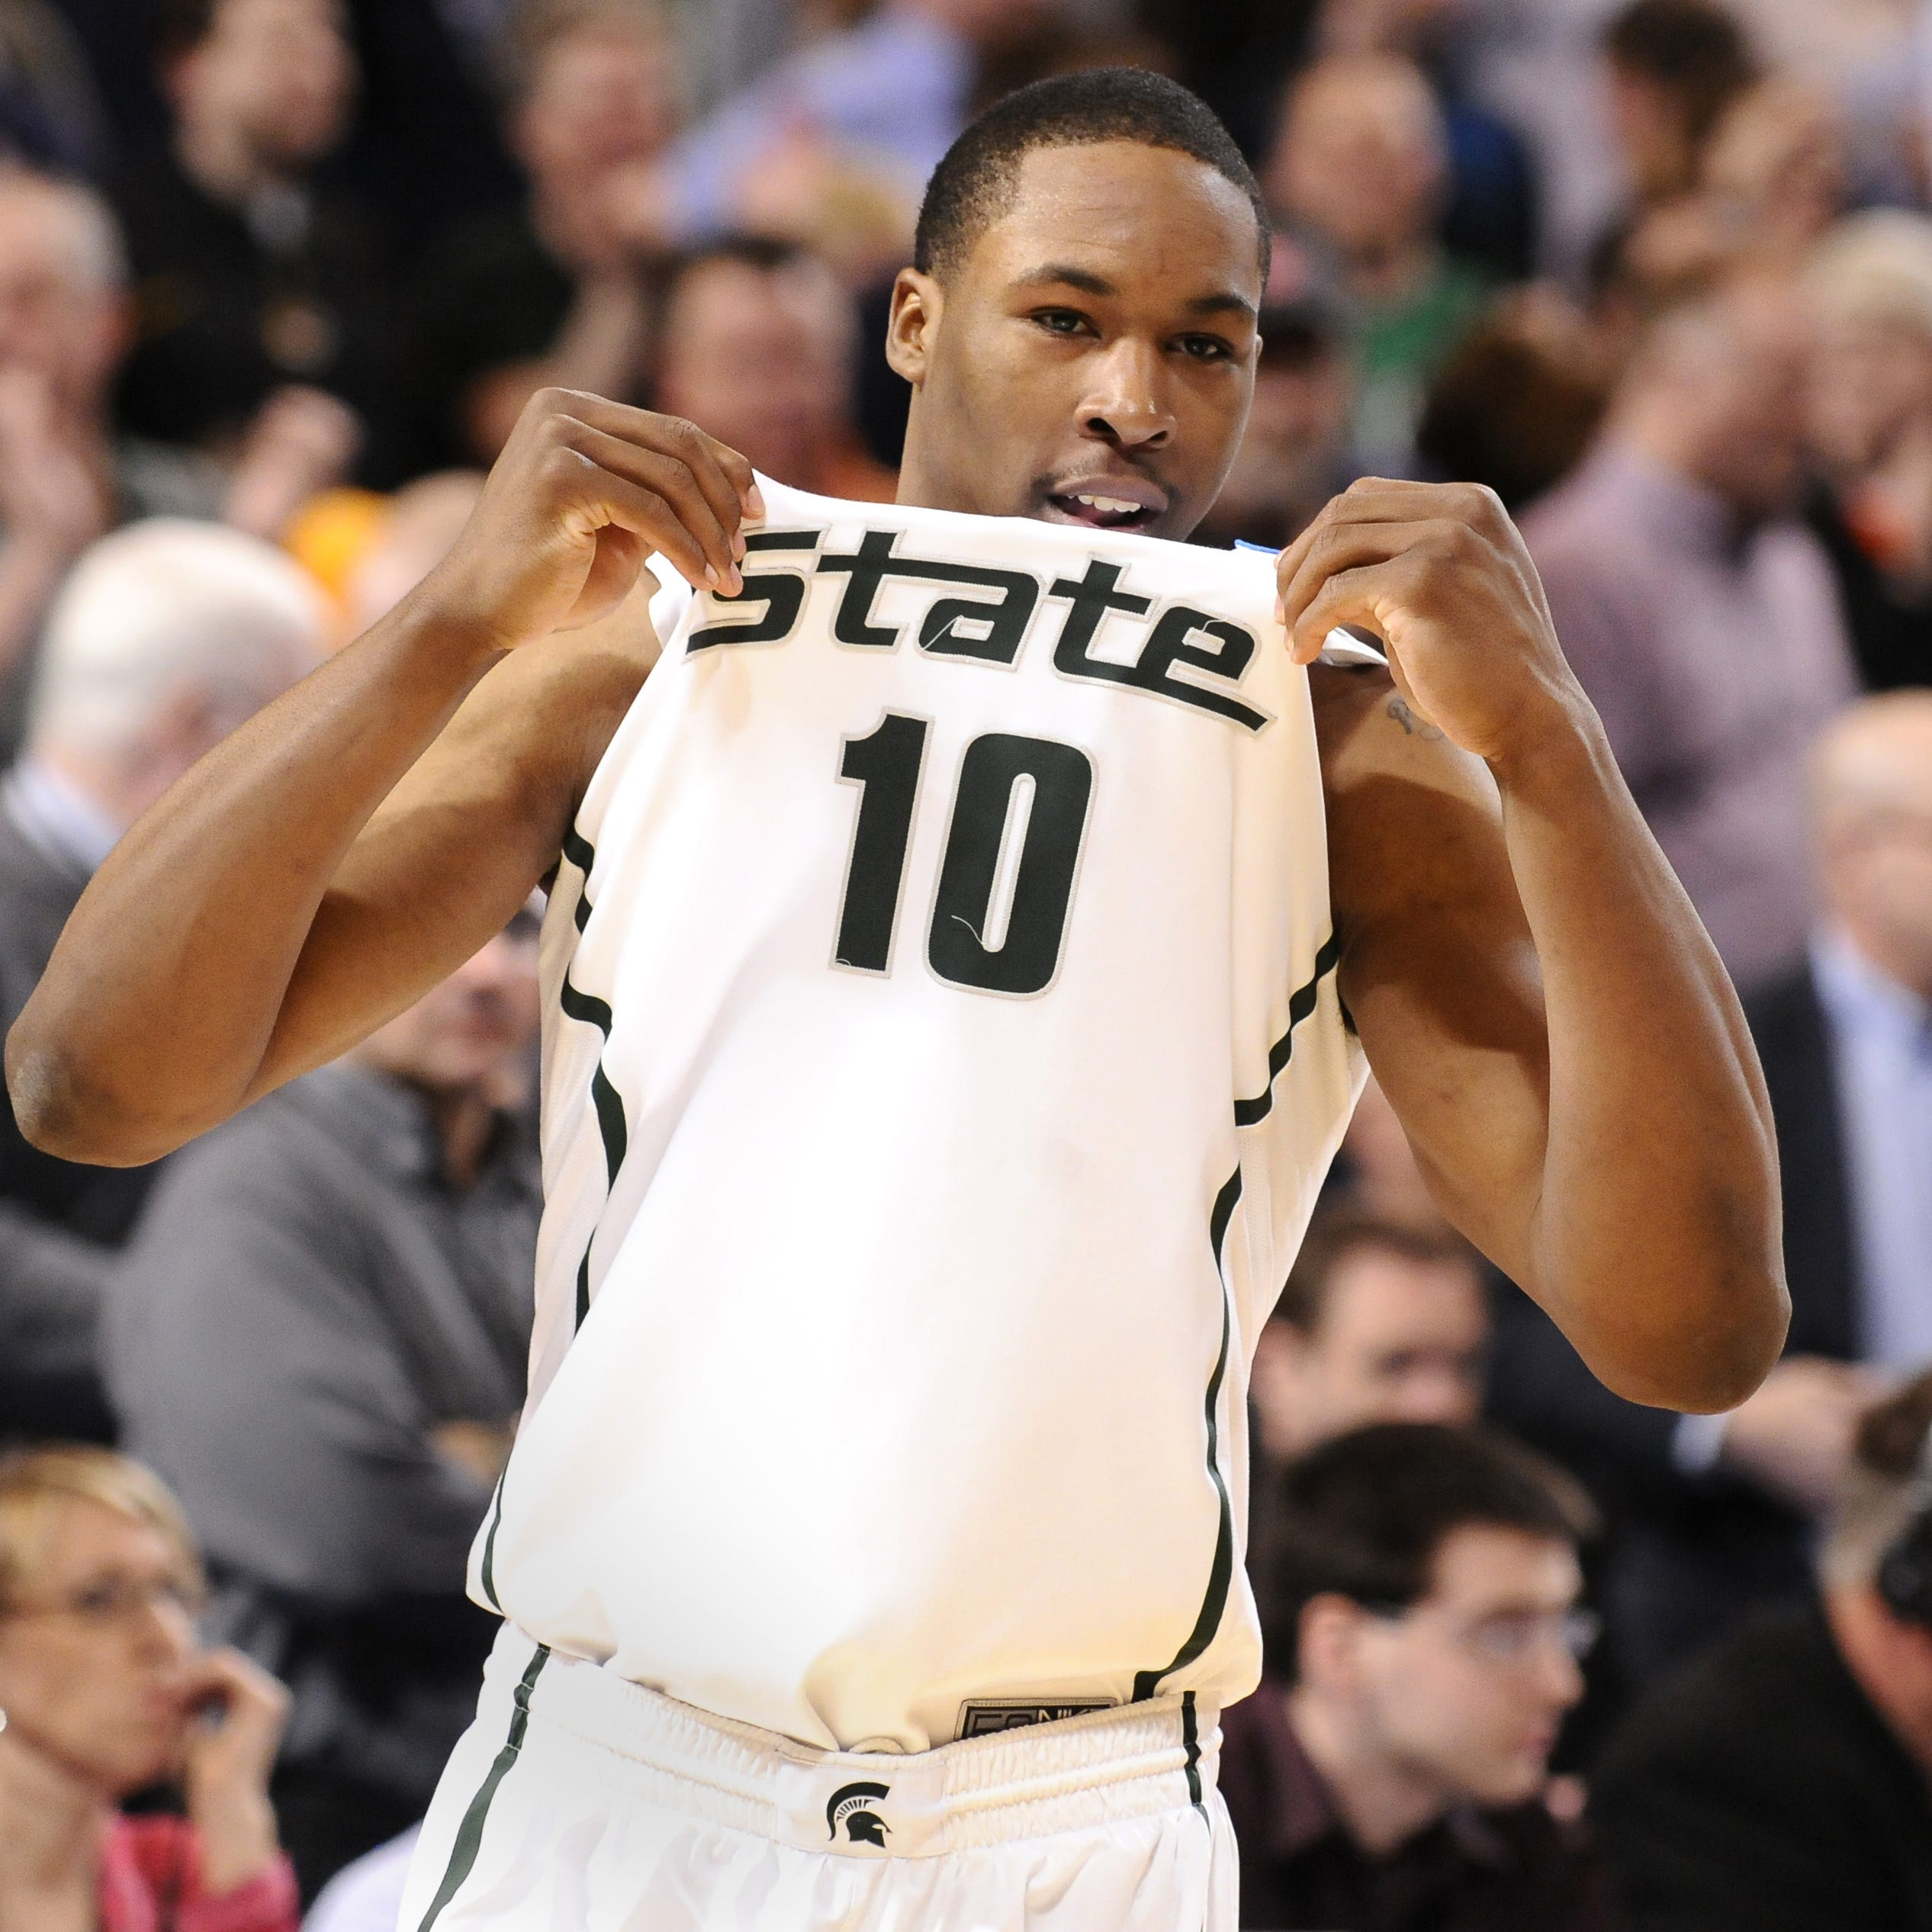 Hardwood to Hollywood: Former MSU hoops star Delvon Roe's new show premieres Tuesday